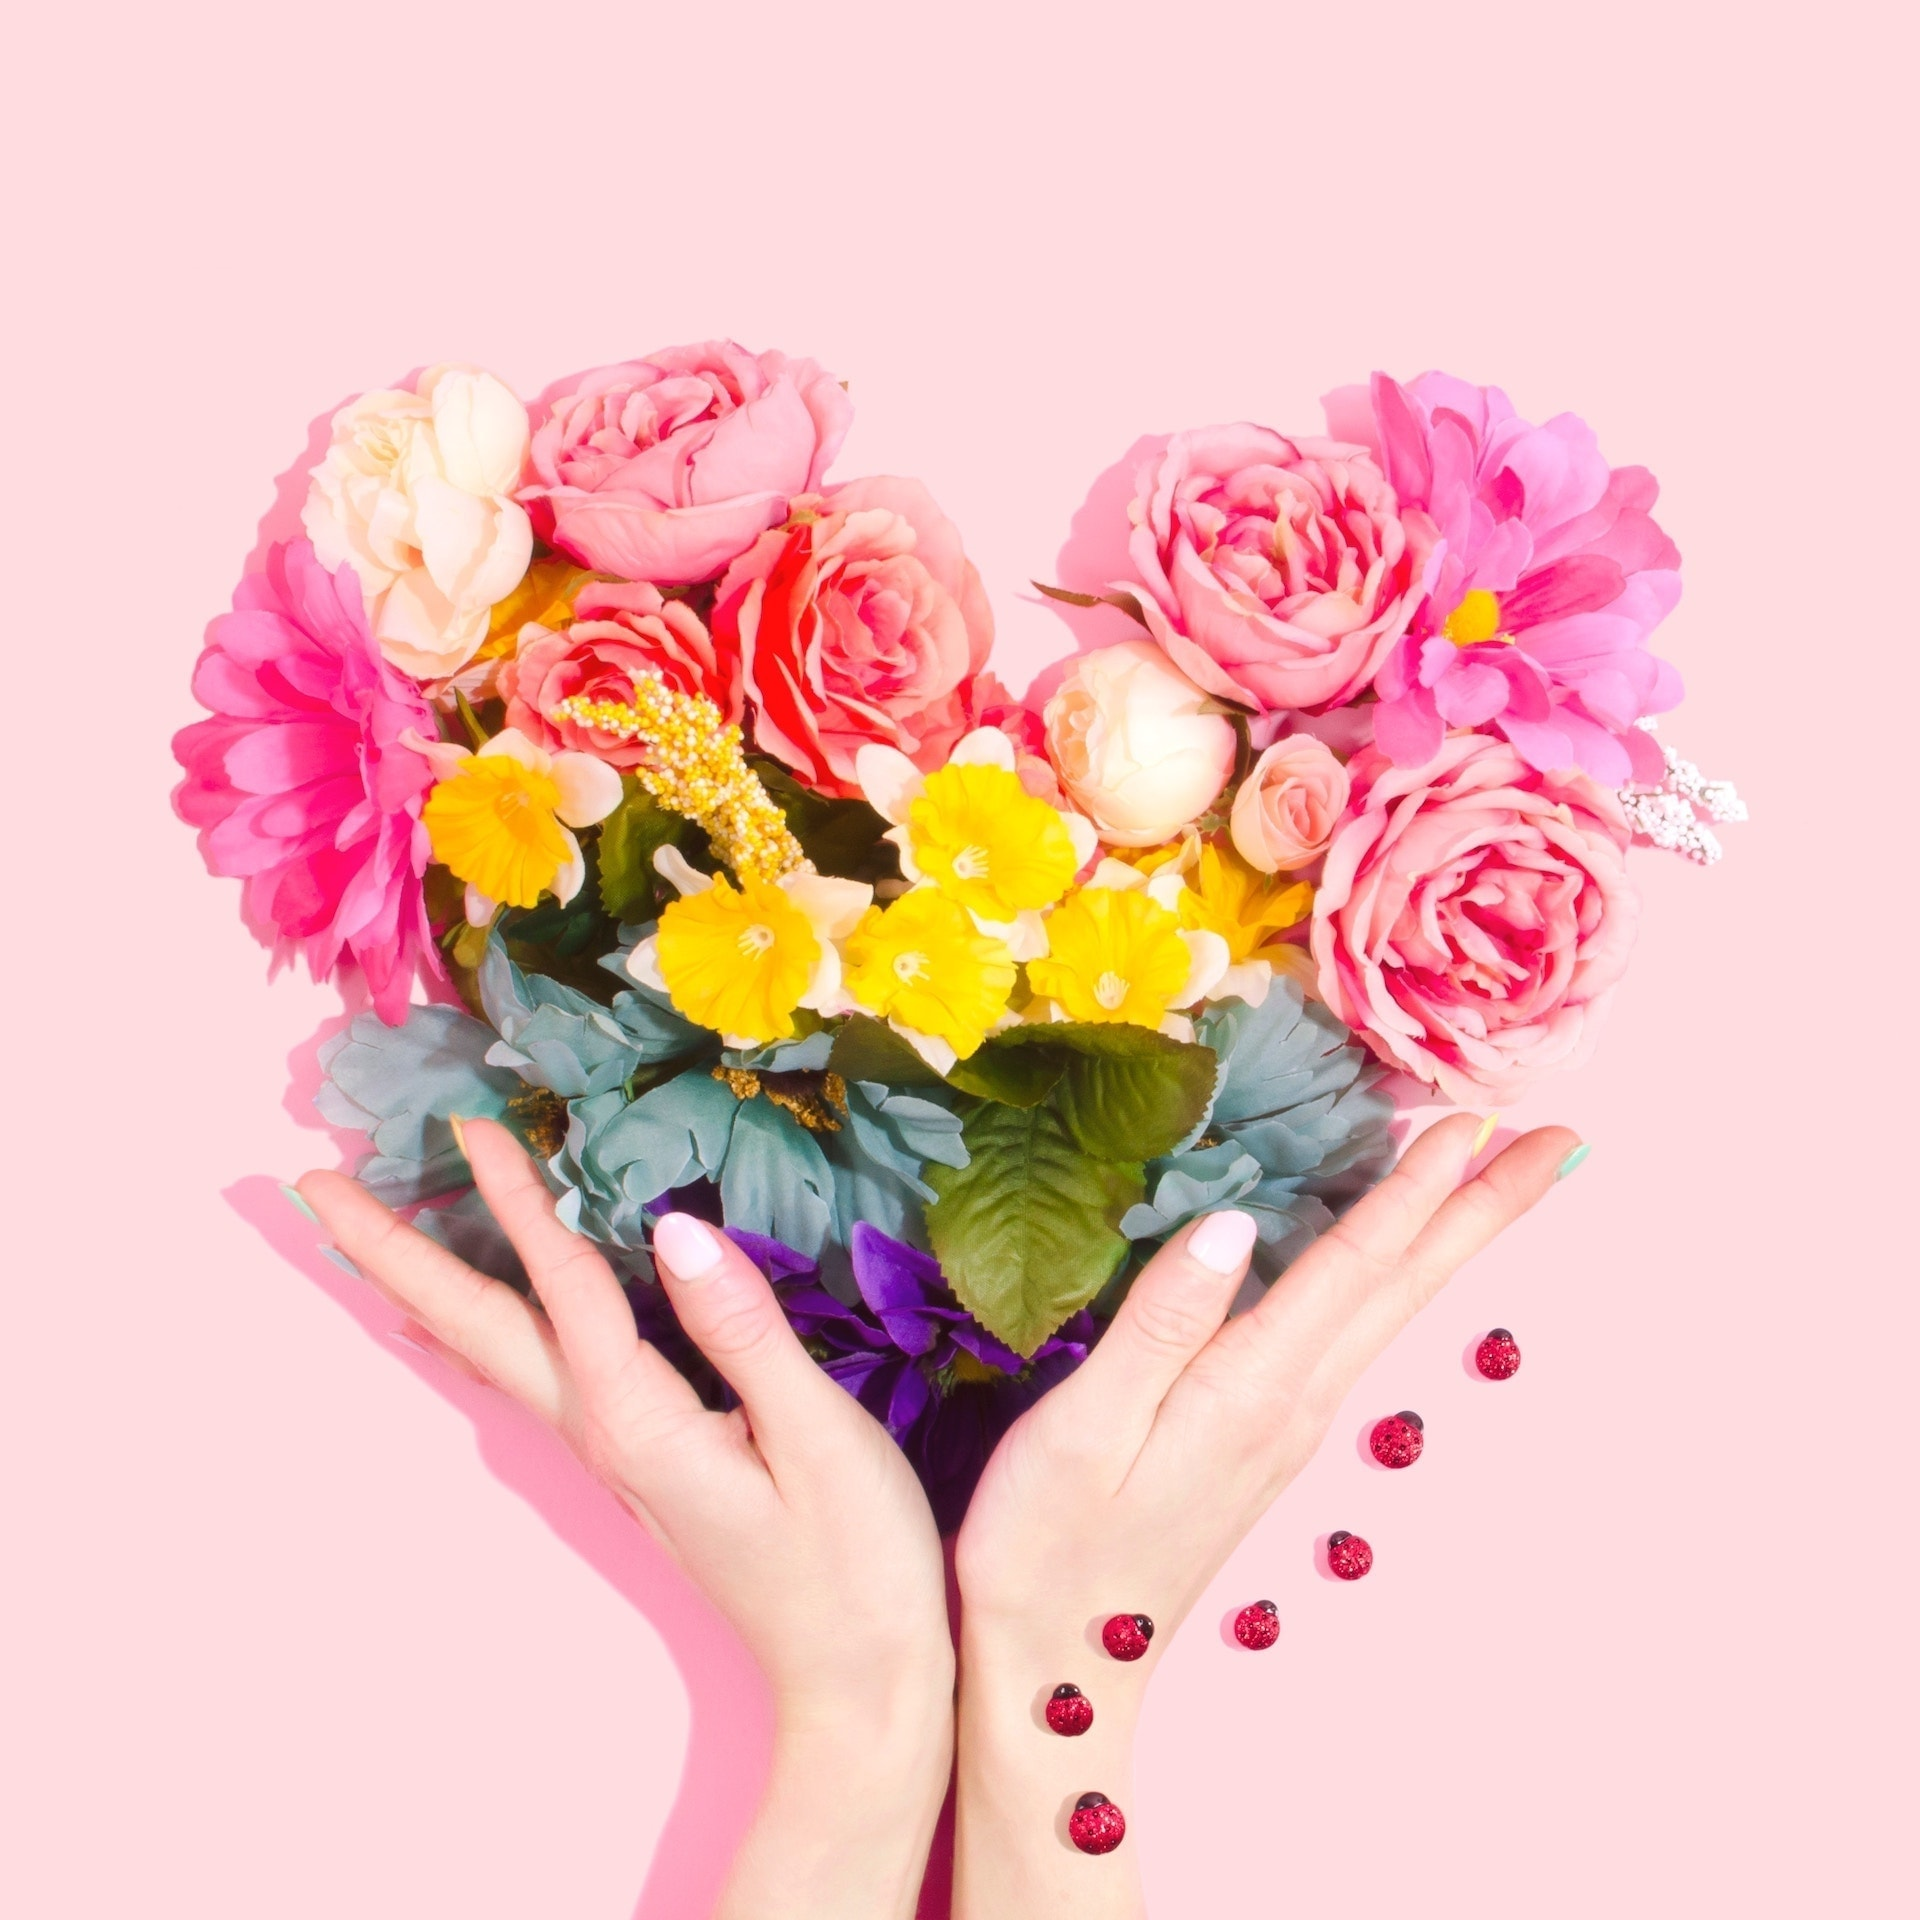 Dummy guy's guide: Should I buy flowers for her?